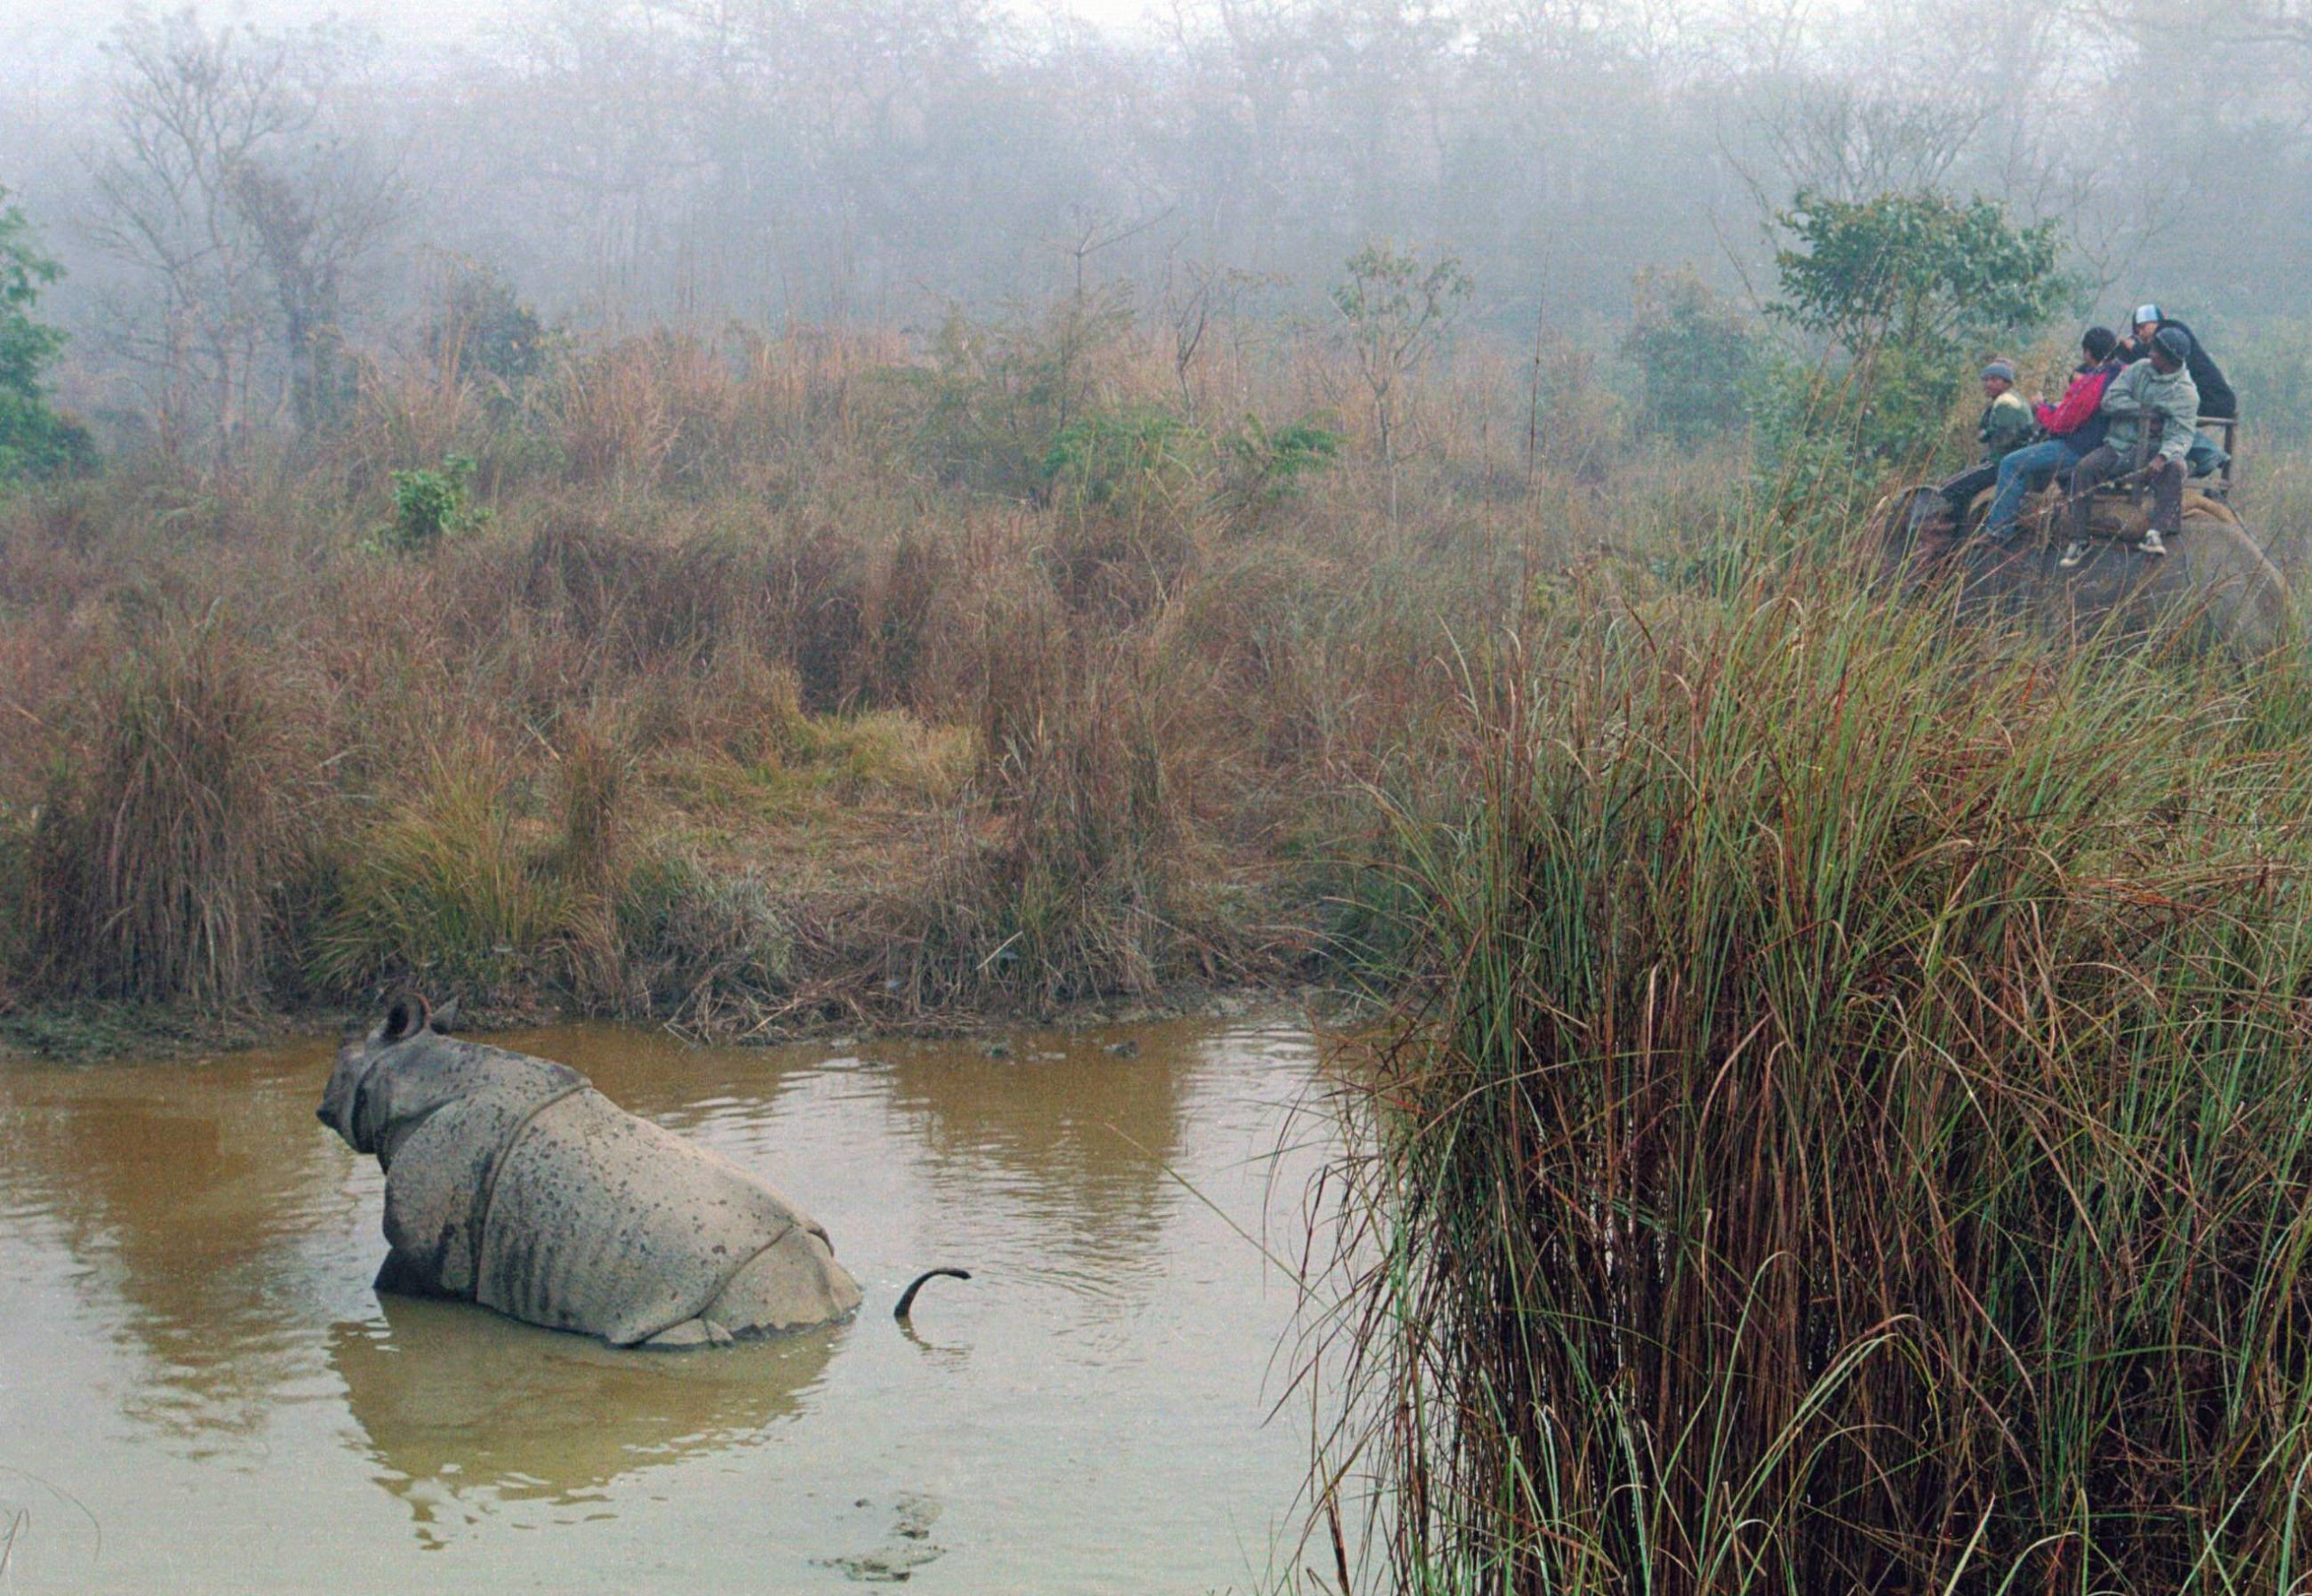 People riding an elephant watch a rhino bathing in a pond in the Chitwan National Park. | REUTERS